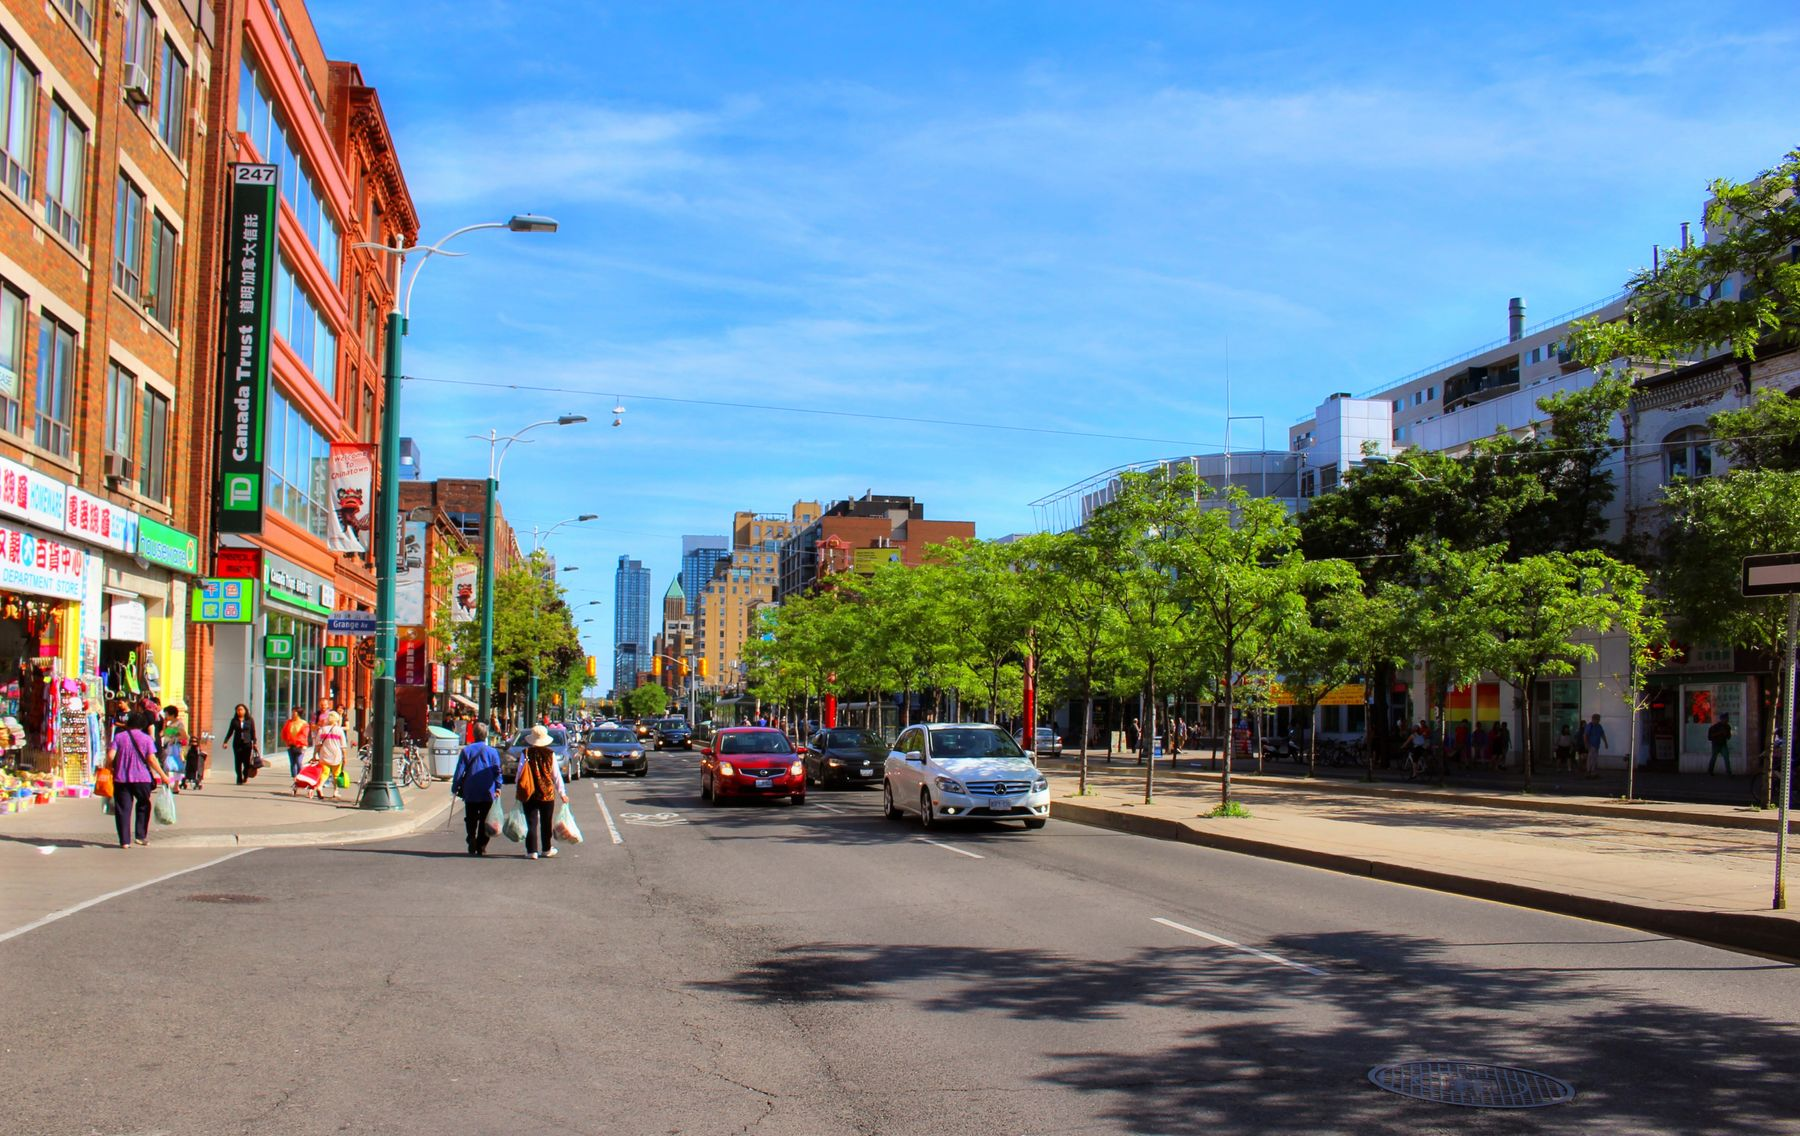 street view during the day in Chinatown, Toronto